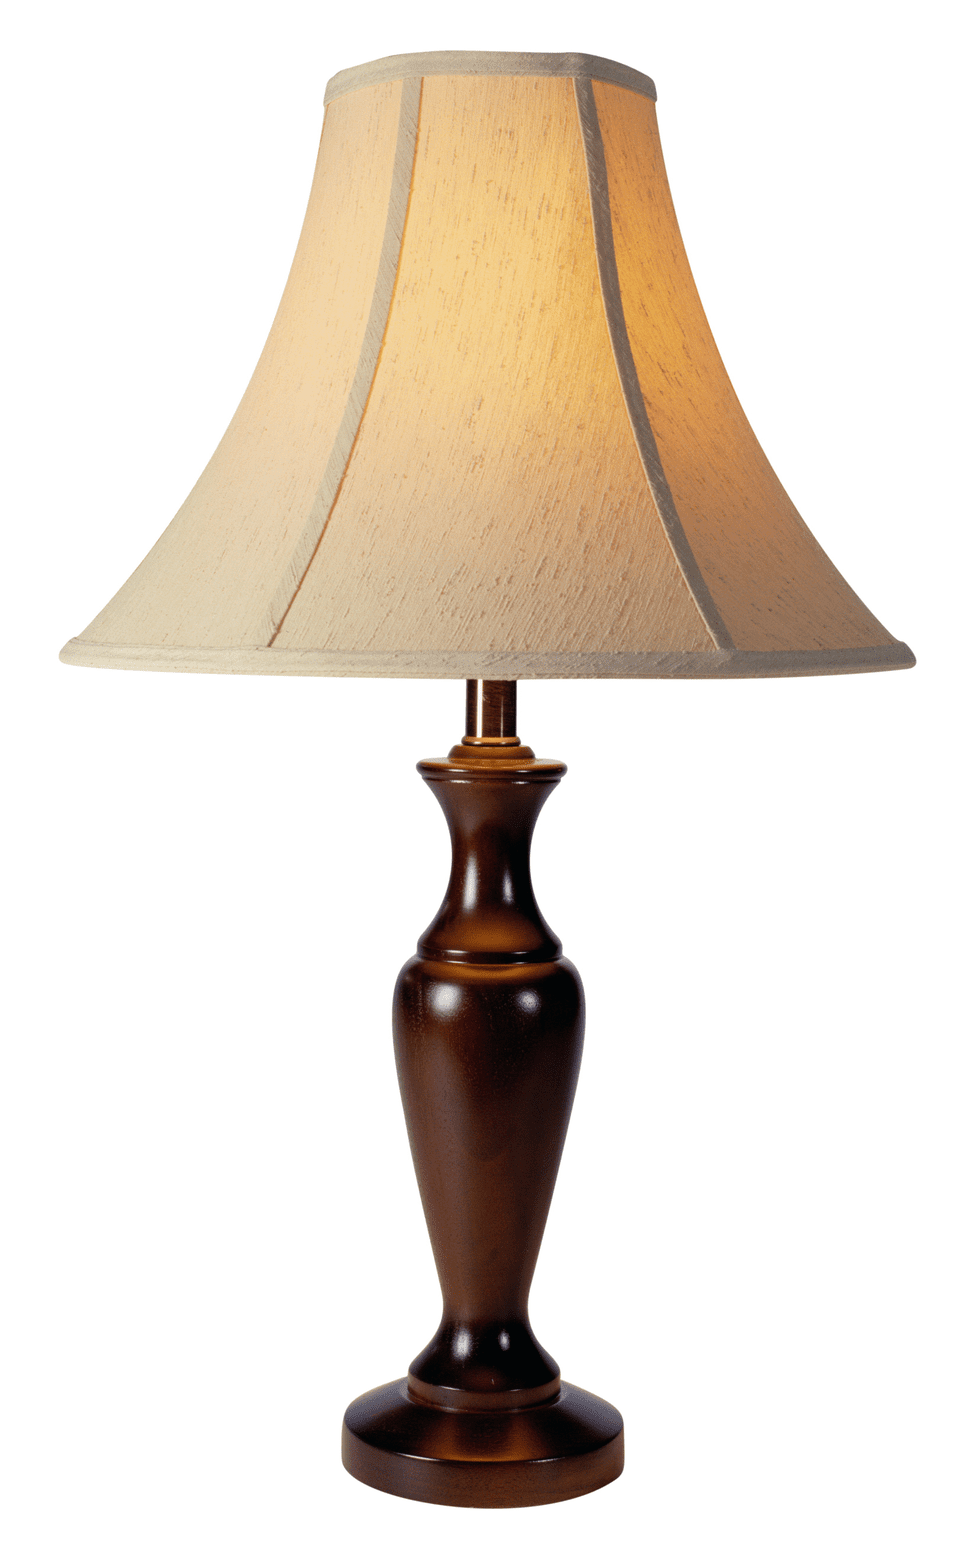 Why You Need a Lamp Shade (with Examples)